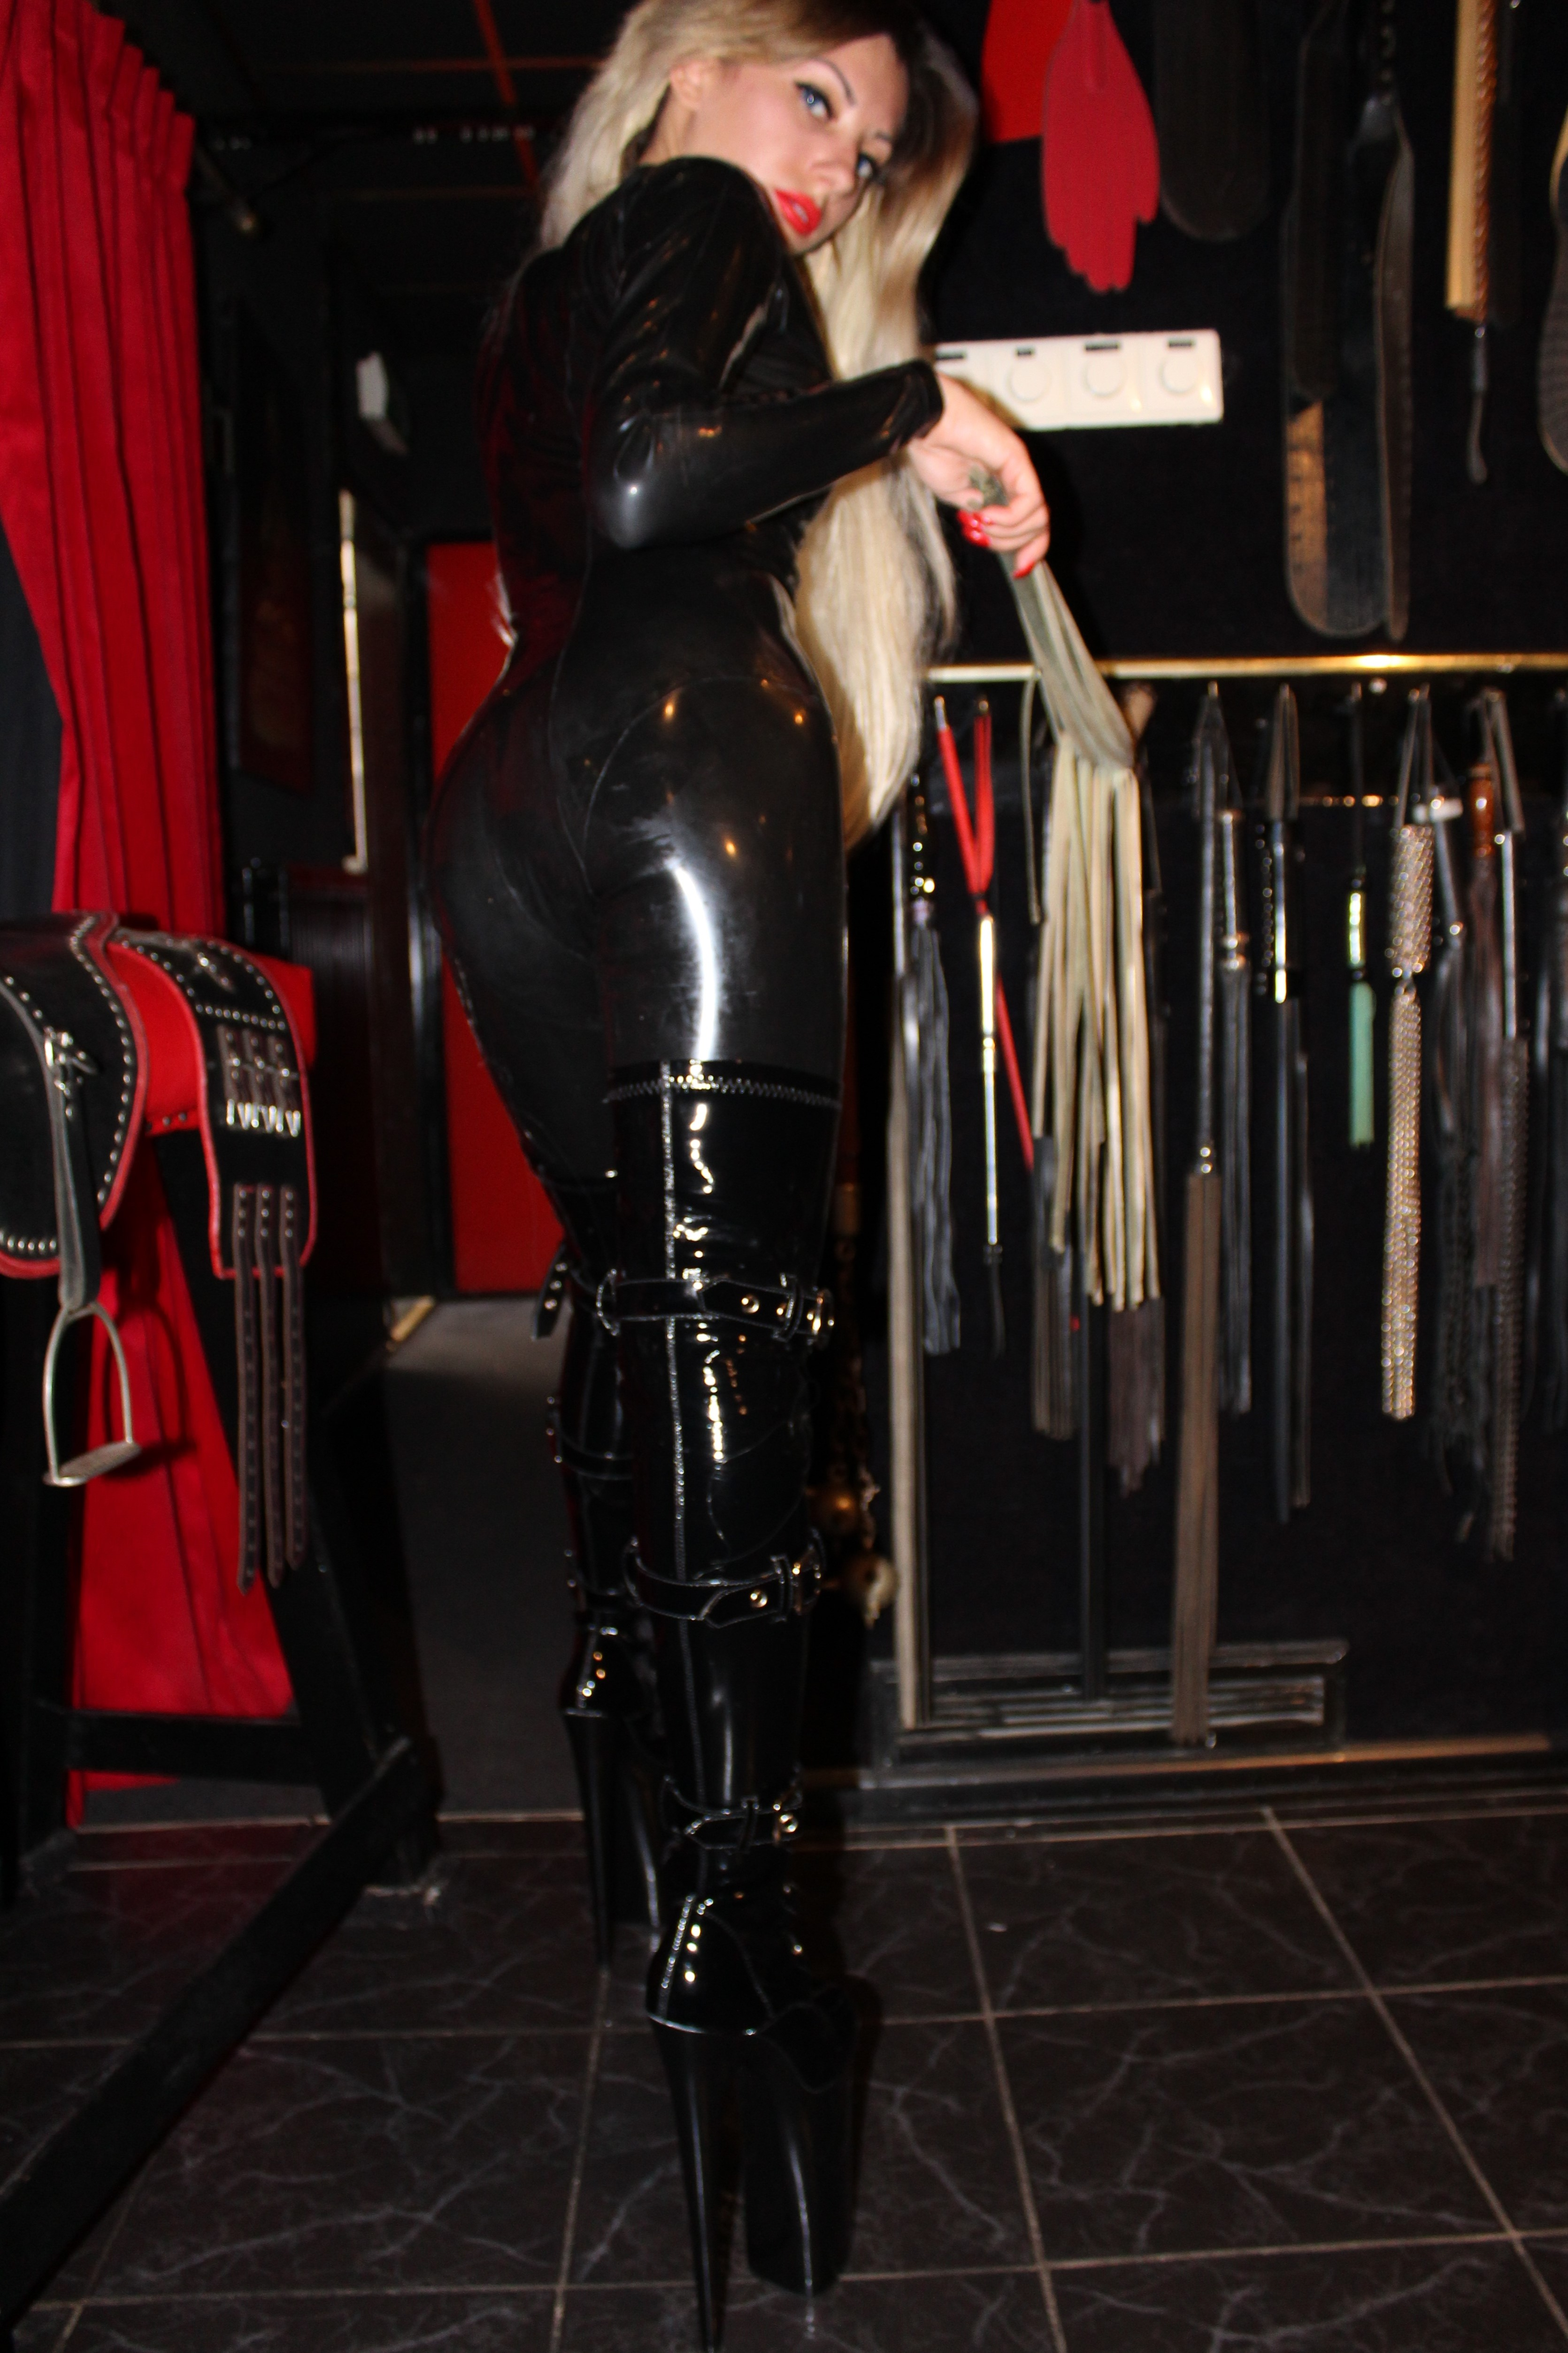 Over Mistress Emma